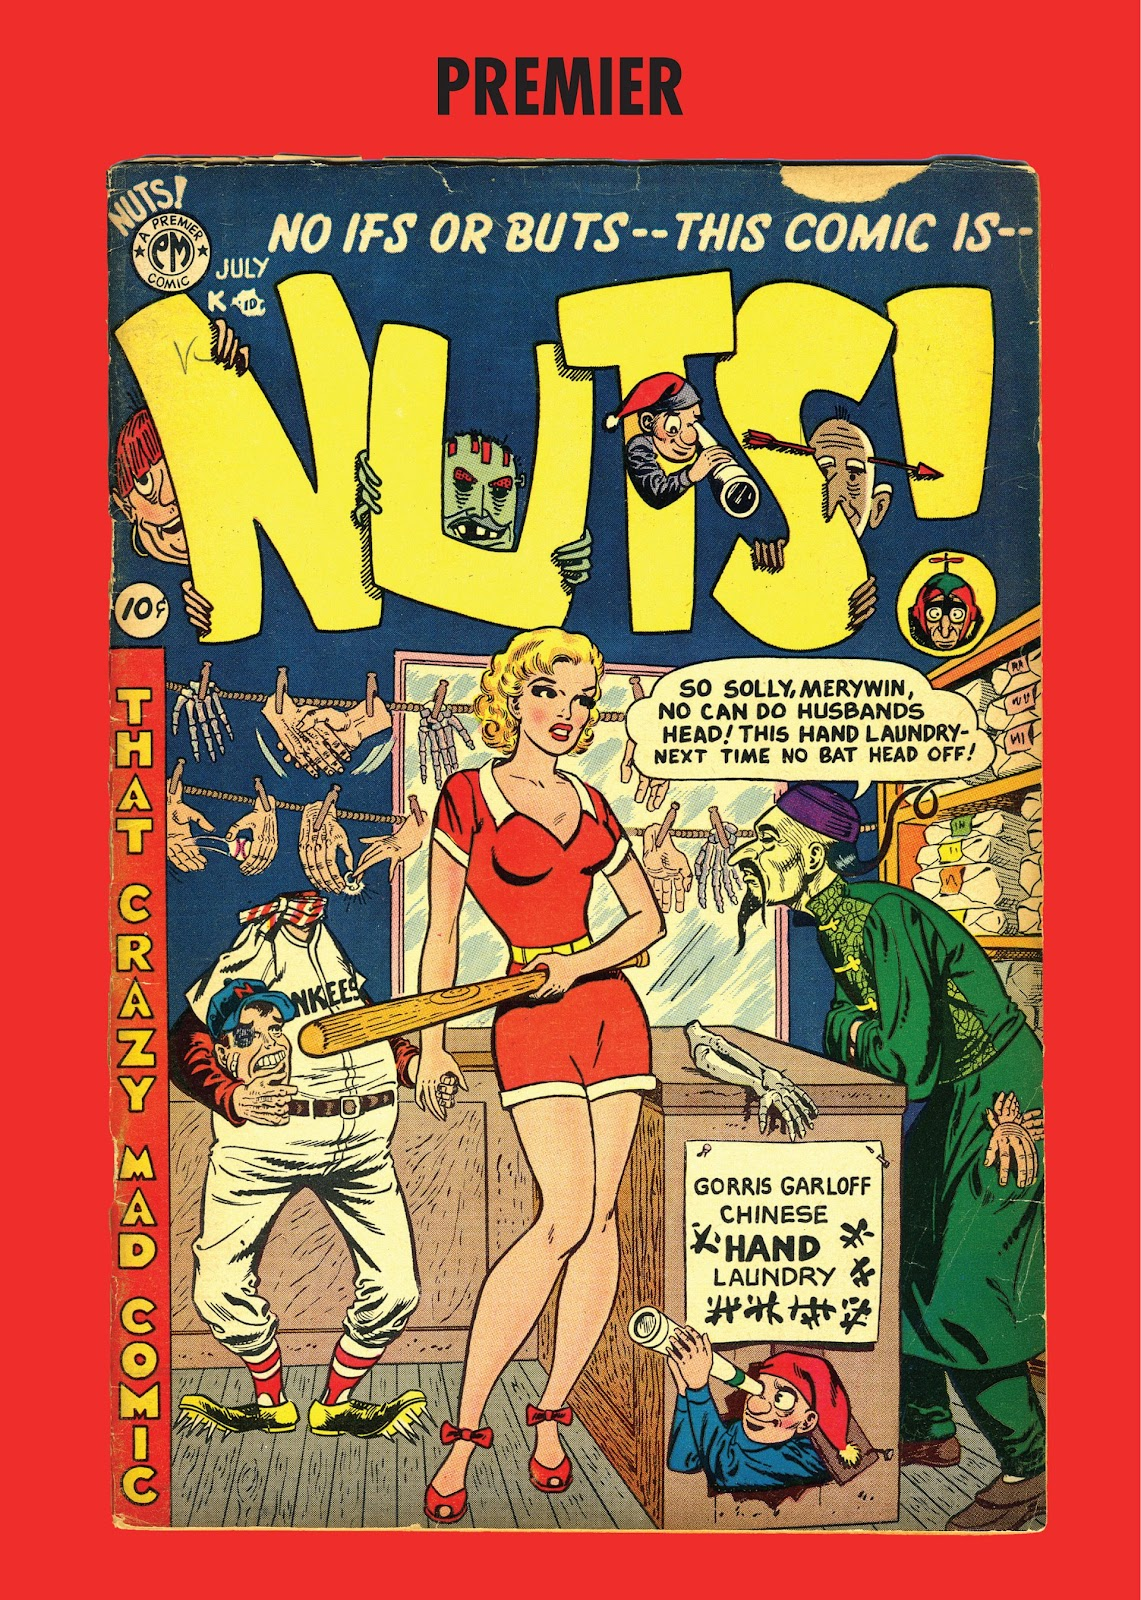 Read online Sincerest Form of Parody: The Best 1950s MAD-Inspired Satirical Comics comic -  Issue # TPB (Part 1) - 85